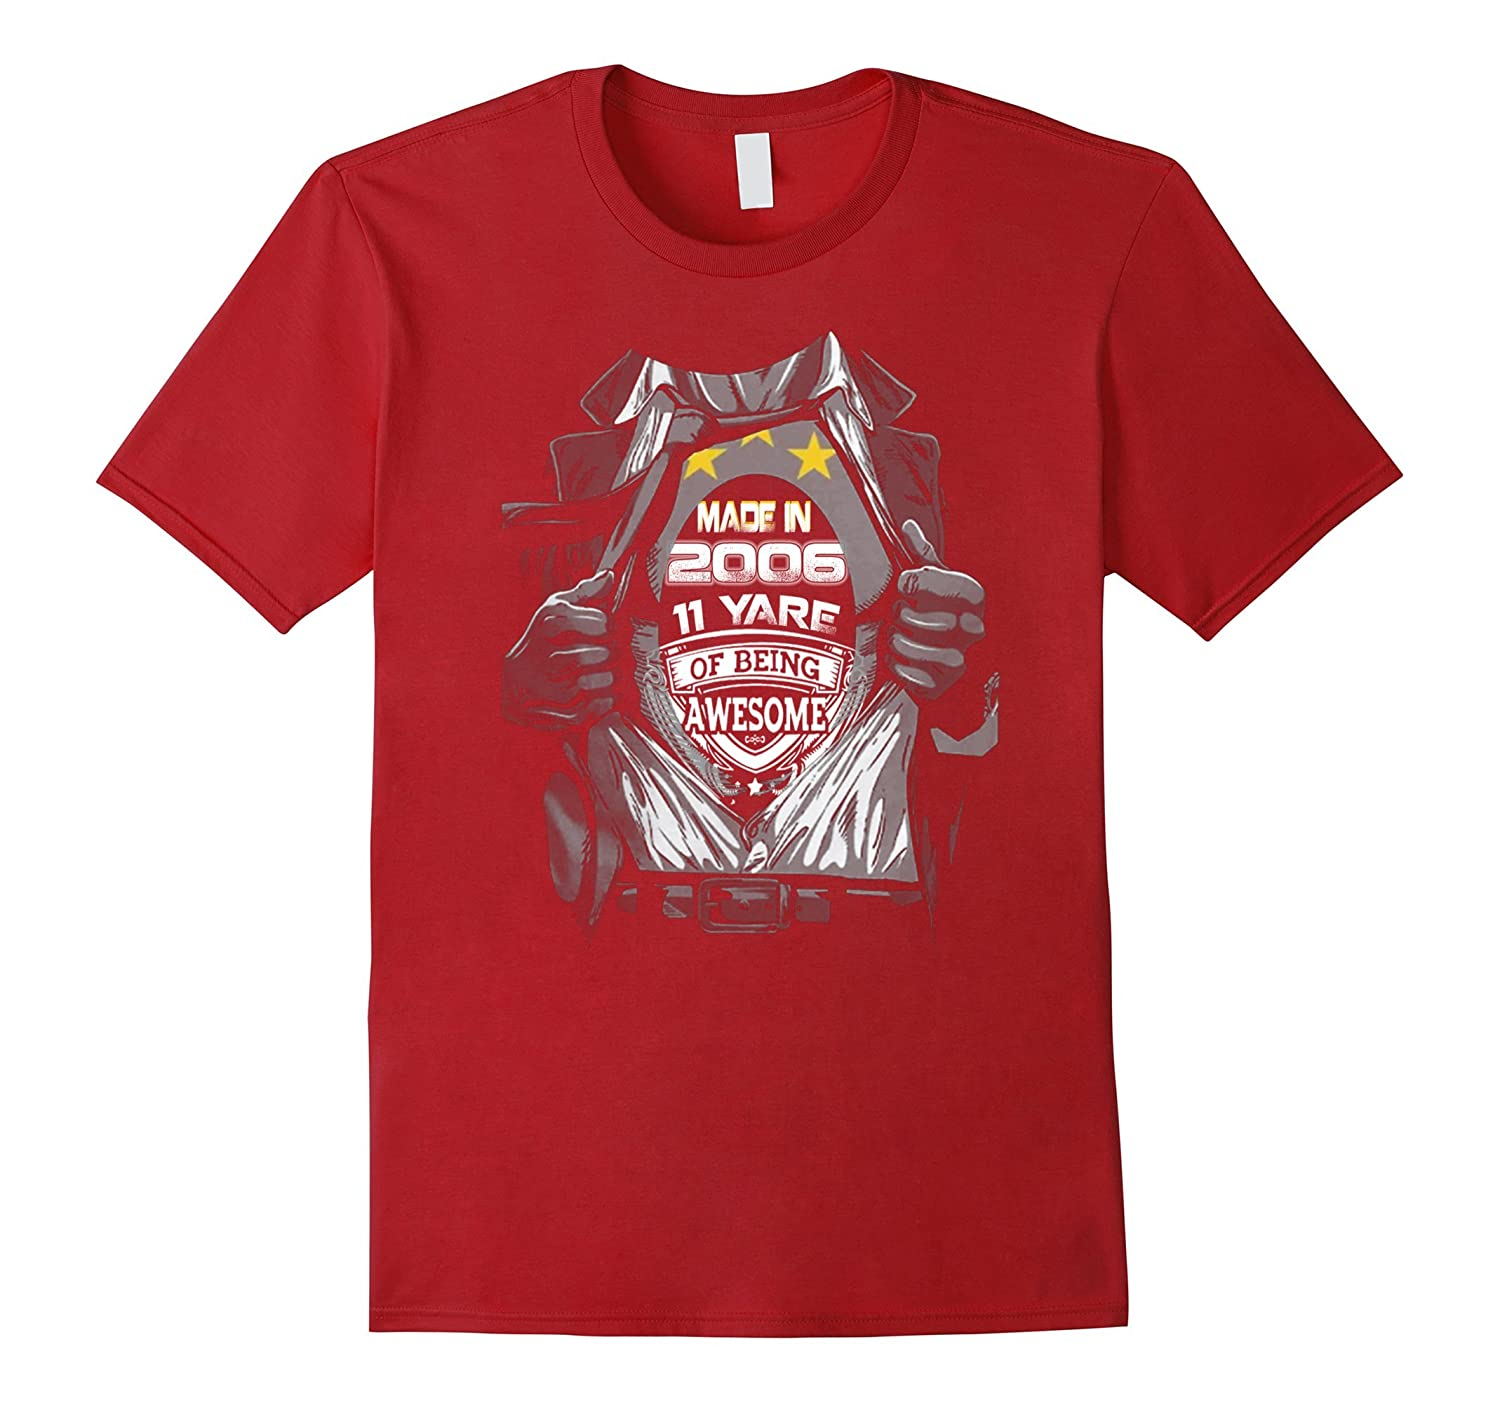 11th birthday Gift Idea 11 Year Old Boy Girl Shirt 2006